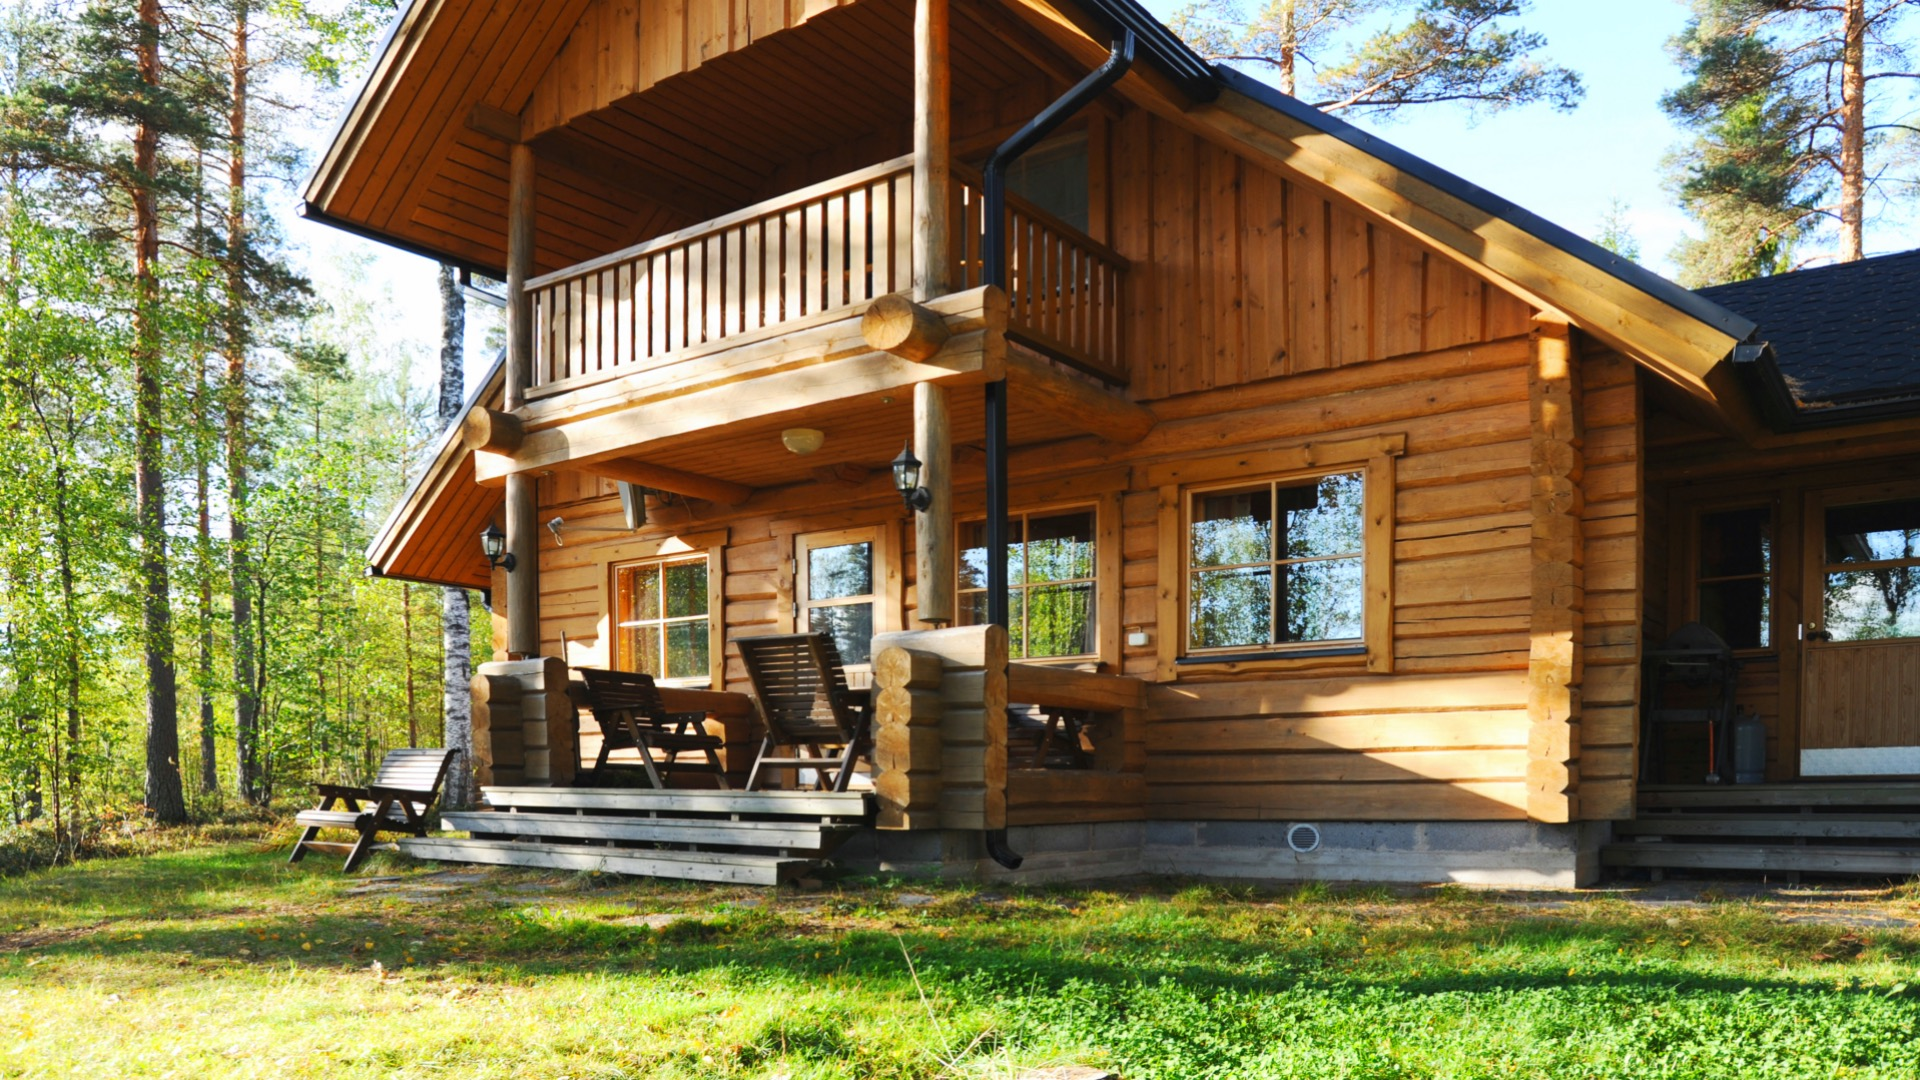 The cottage has 117 m2 space for 10 people, 4 bedrooms spread over 2 floors. A separate smoke sauna near the cottage.